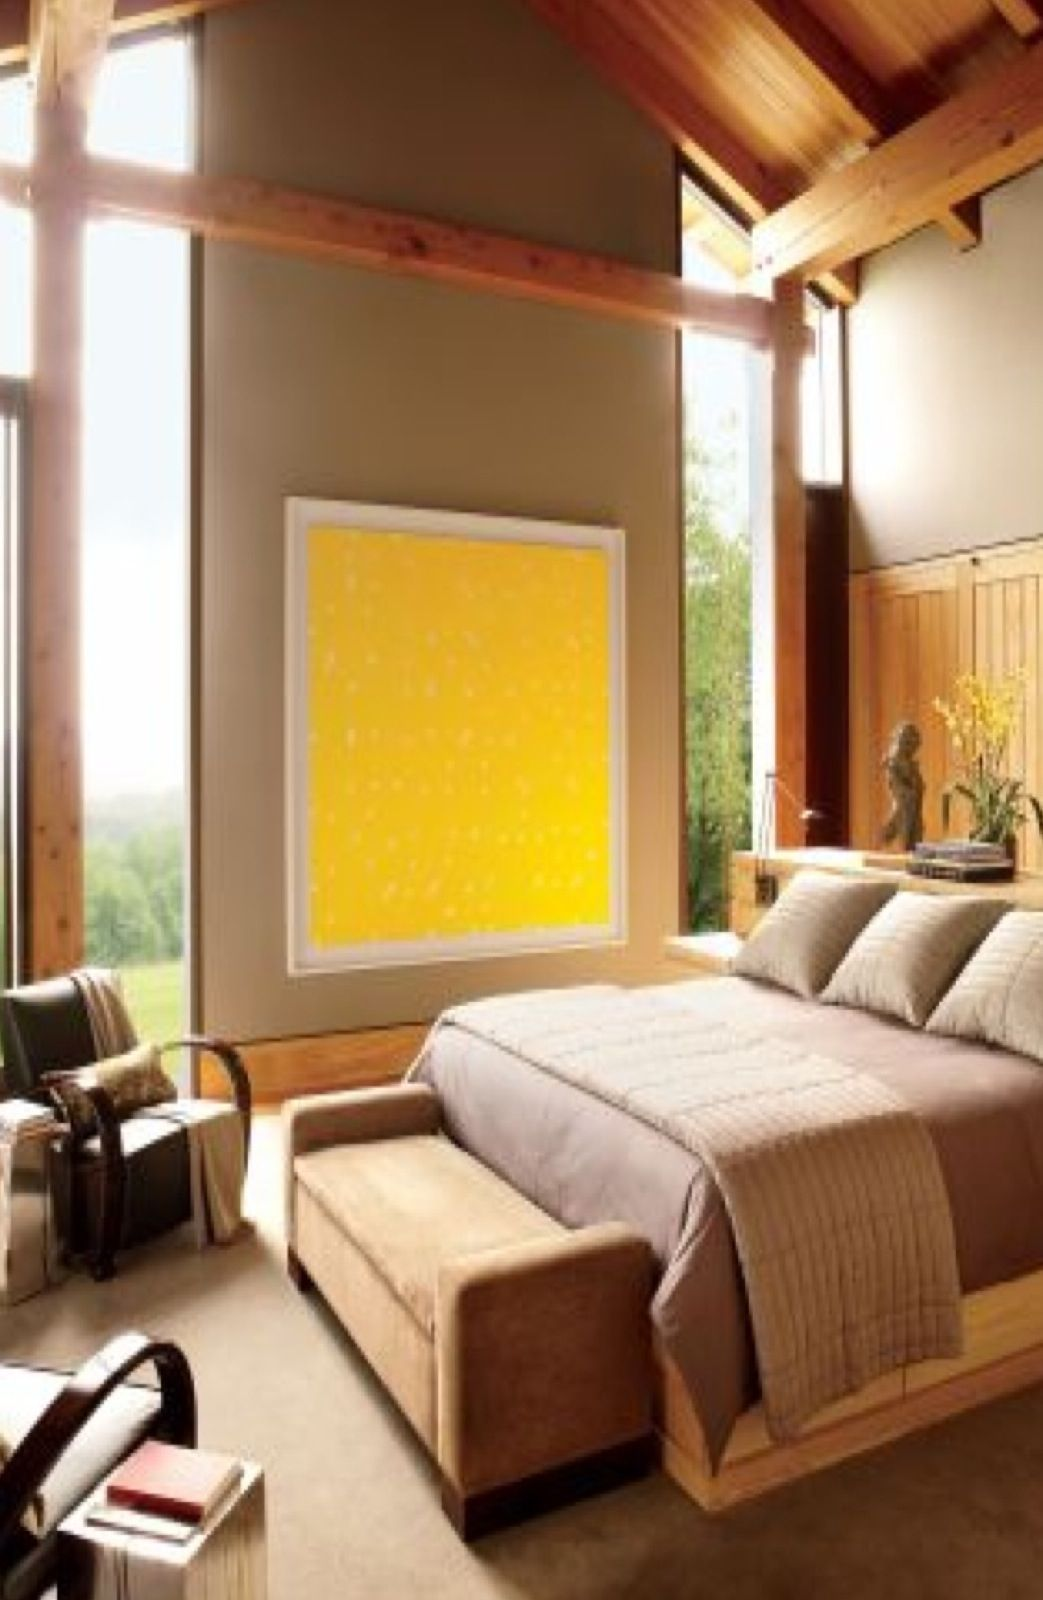 Pinterest for Feng shui in the bedroom